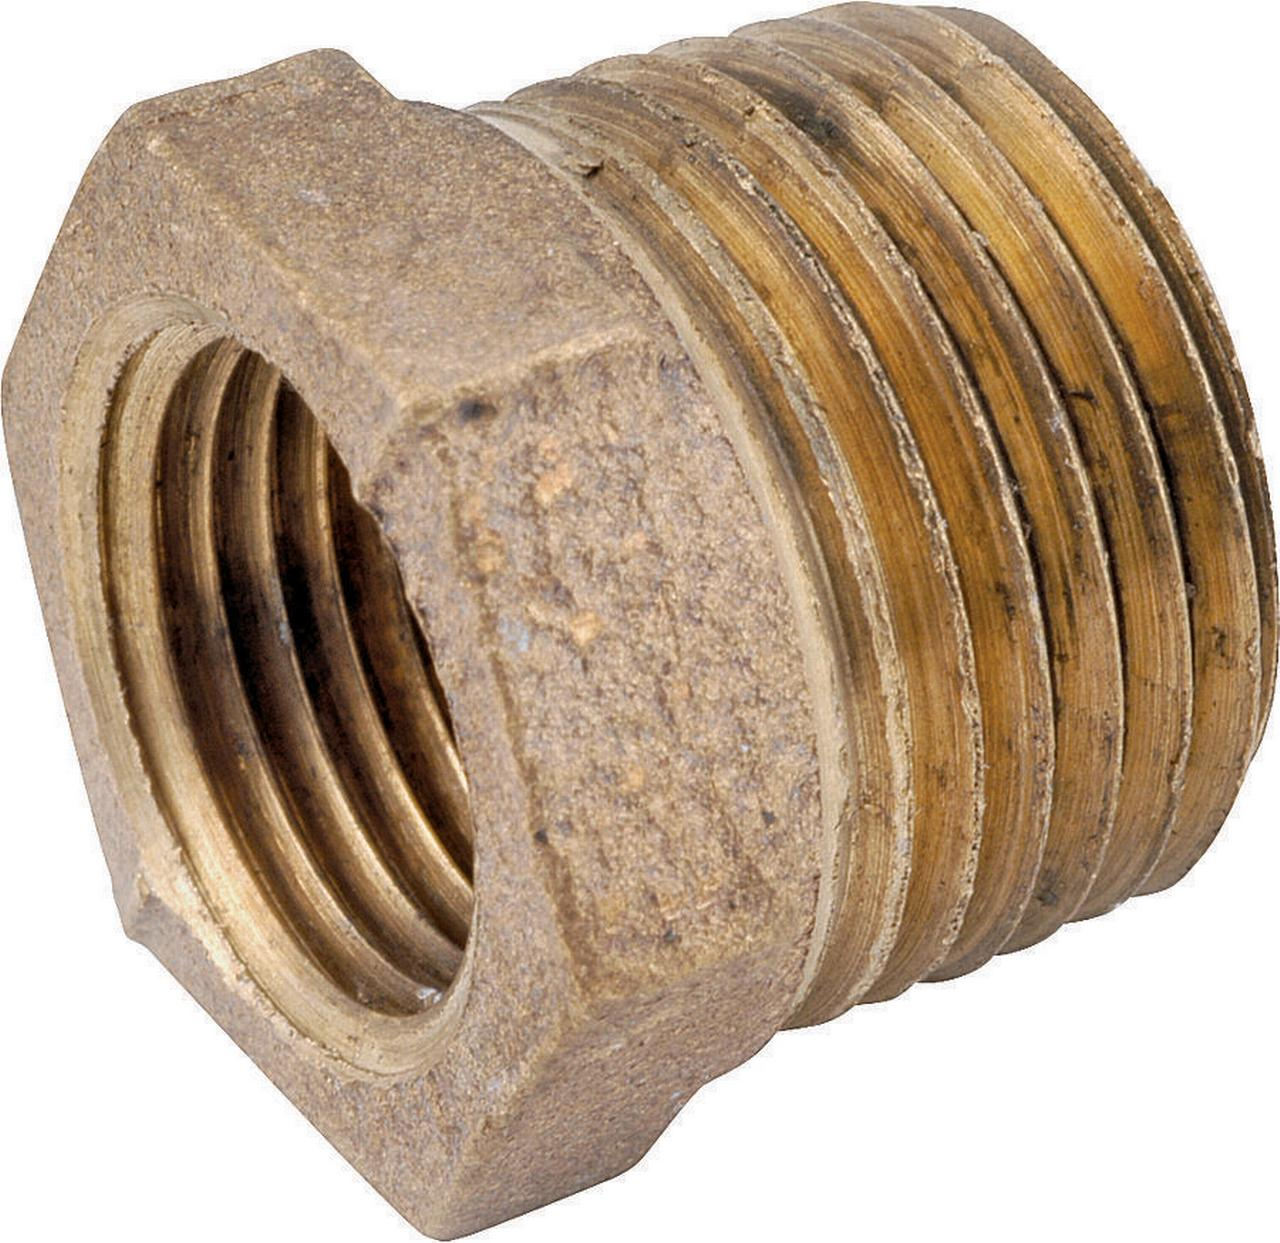 Anderson Metals Corp Inc 3/4x1/4 Brass Bushing 738110-1204